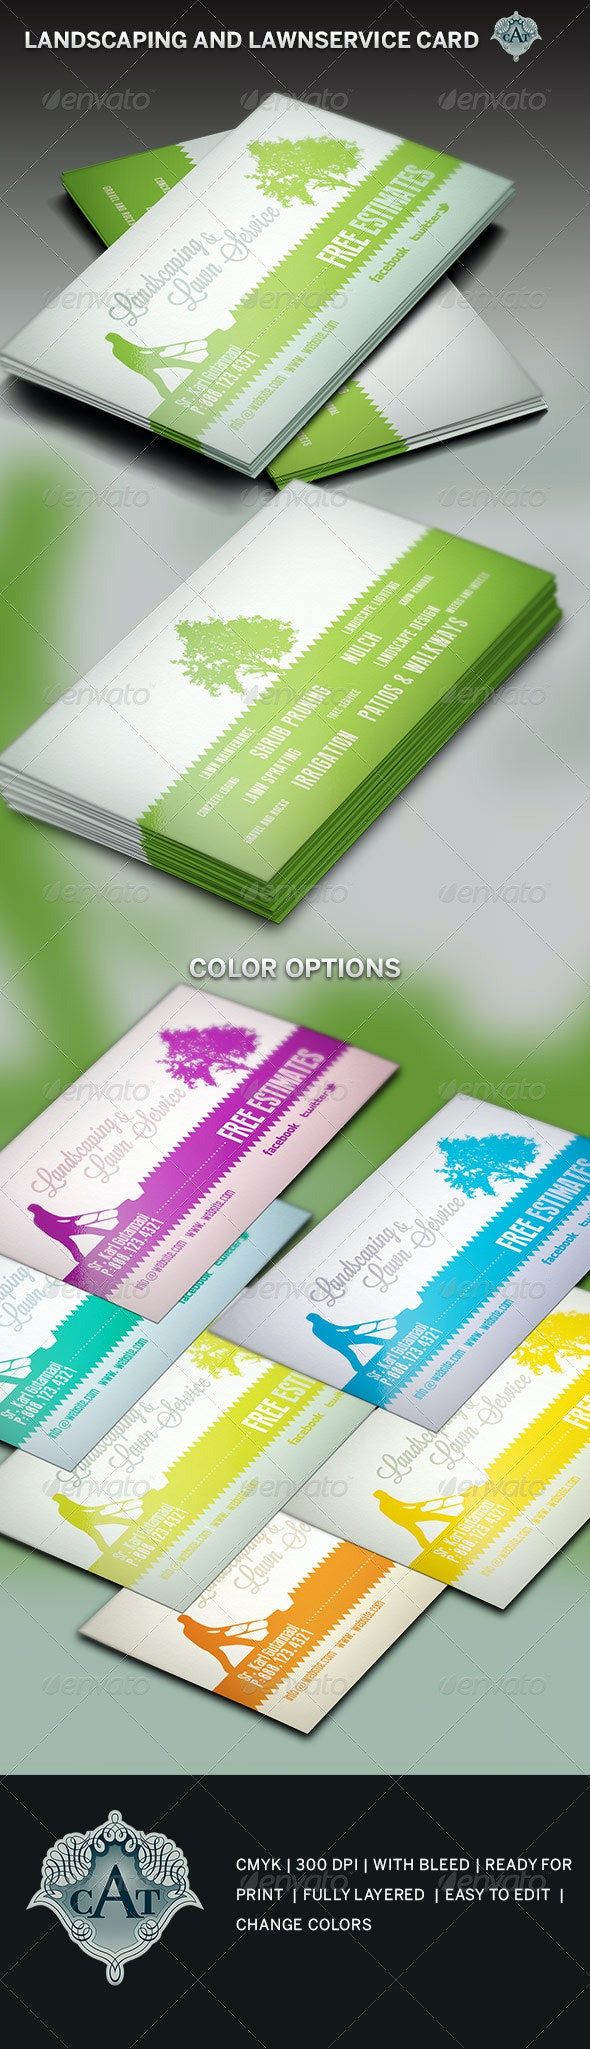 Landscaping and Lawn Business Card Template - Industry Specific Business Cards